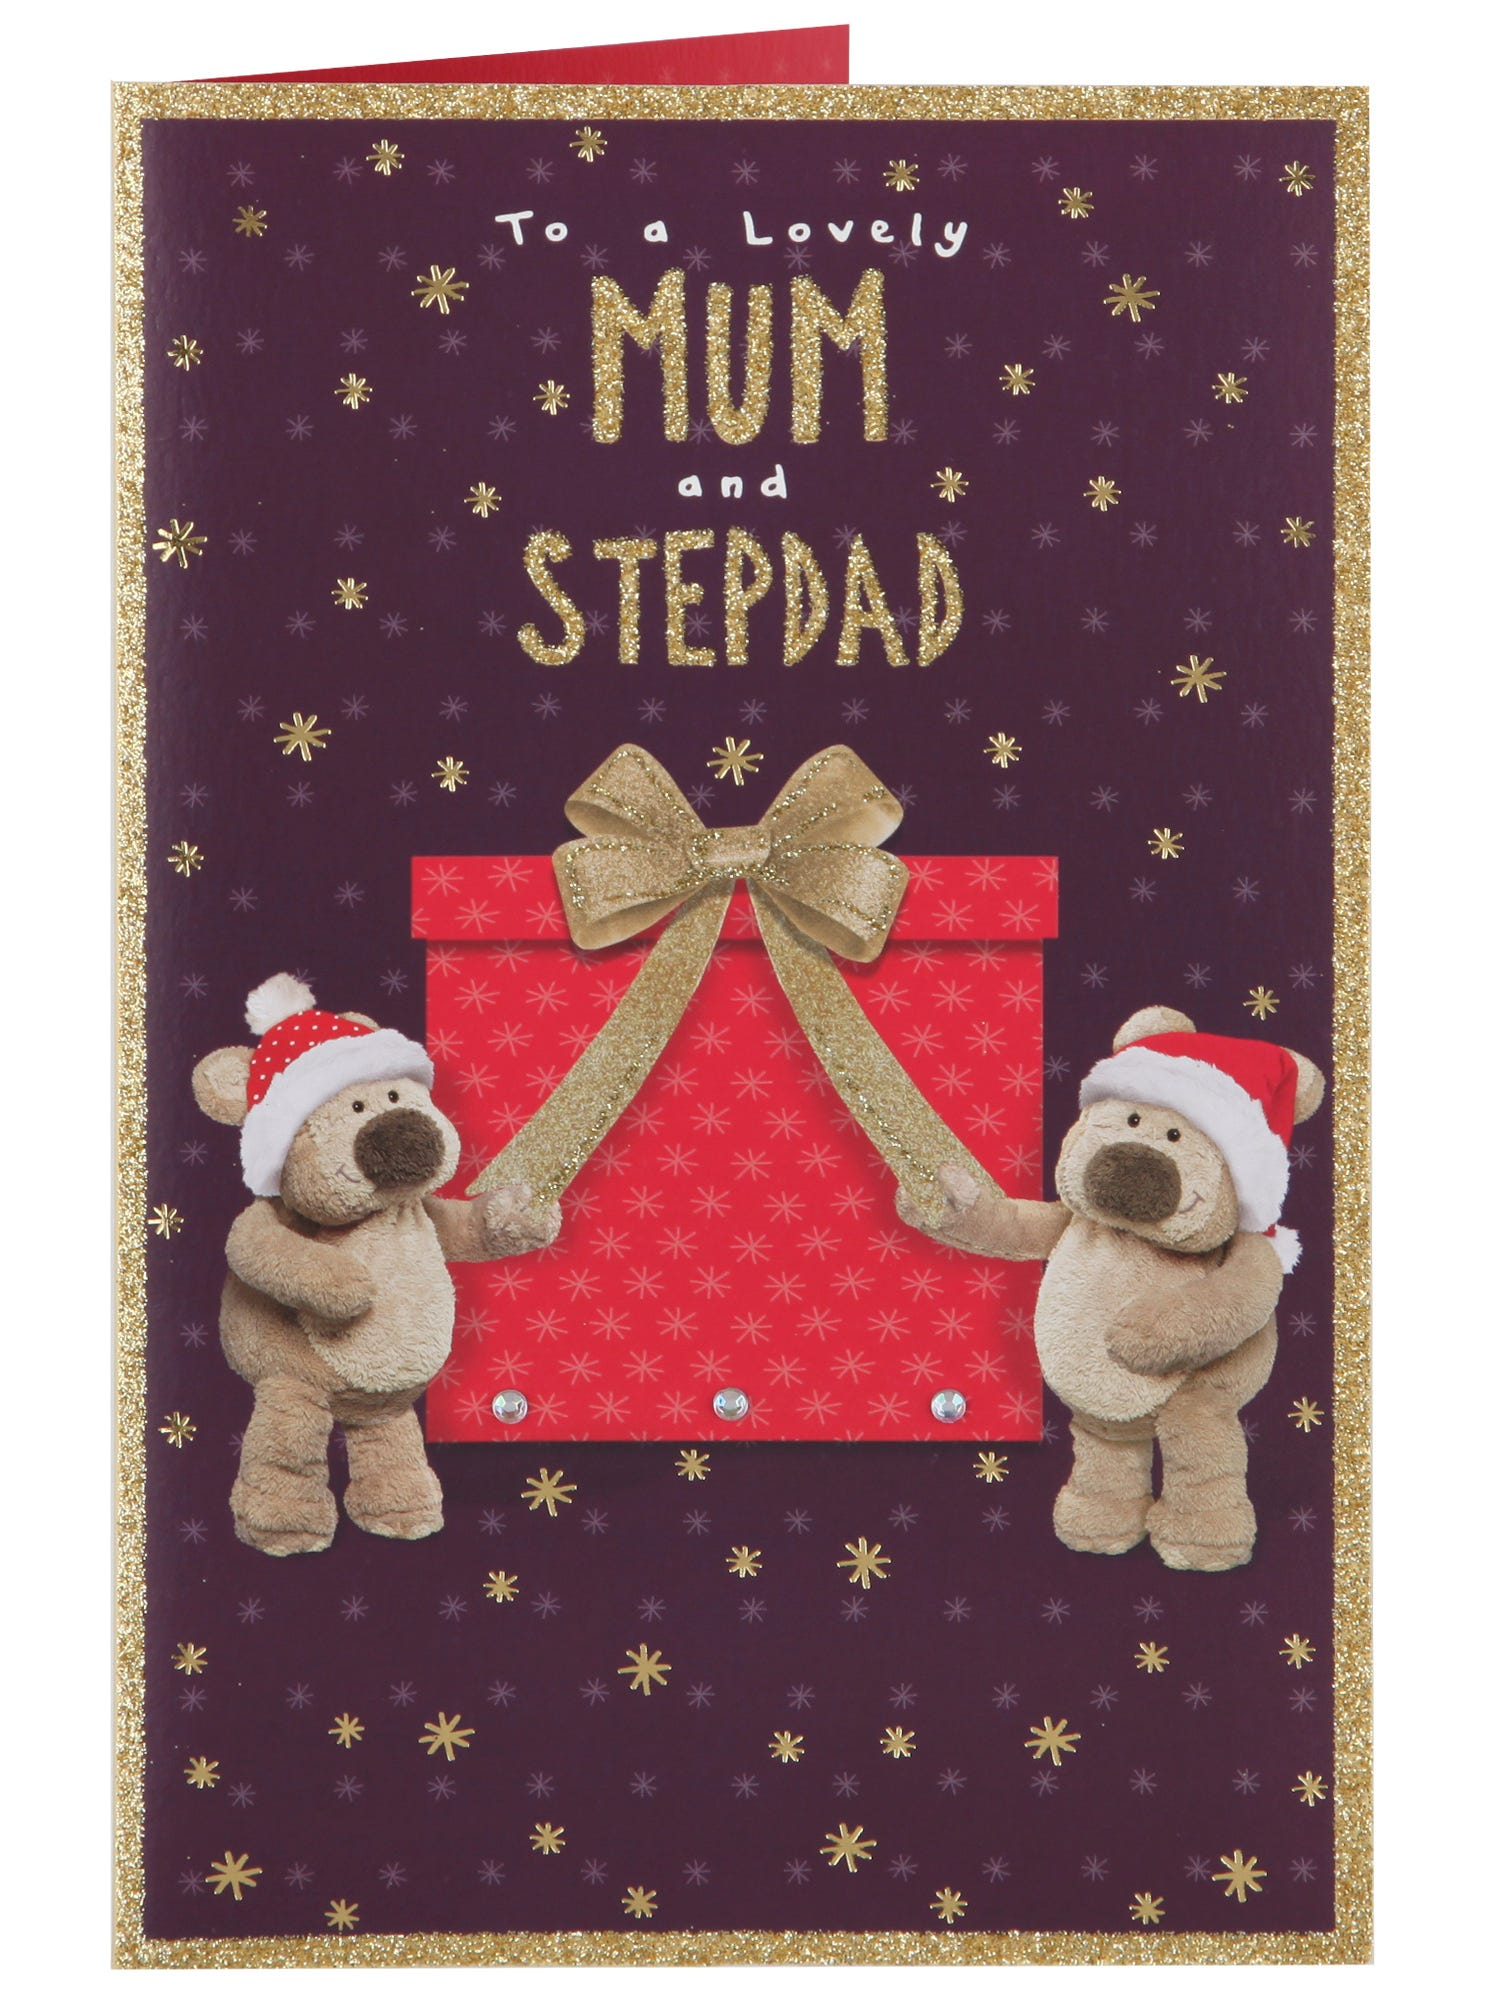 mum stepdad tedmund ted big red present christmas card